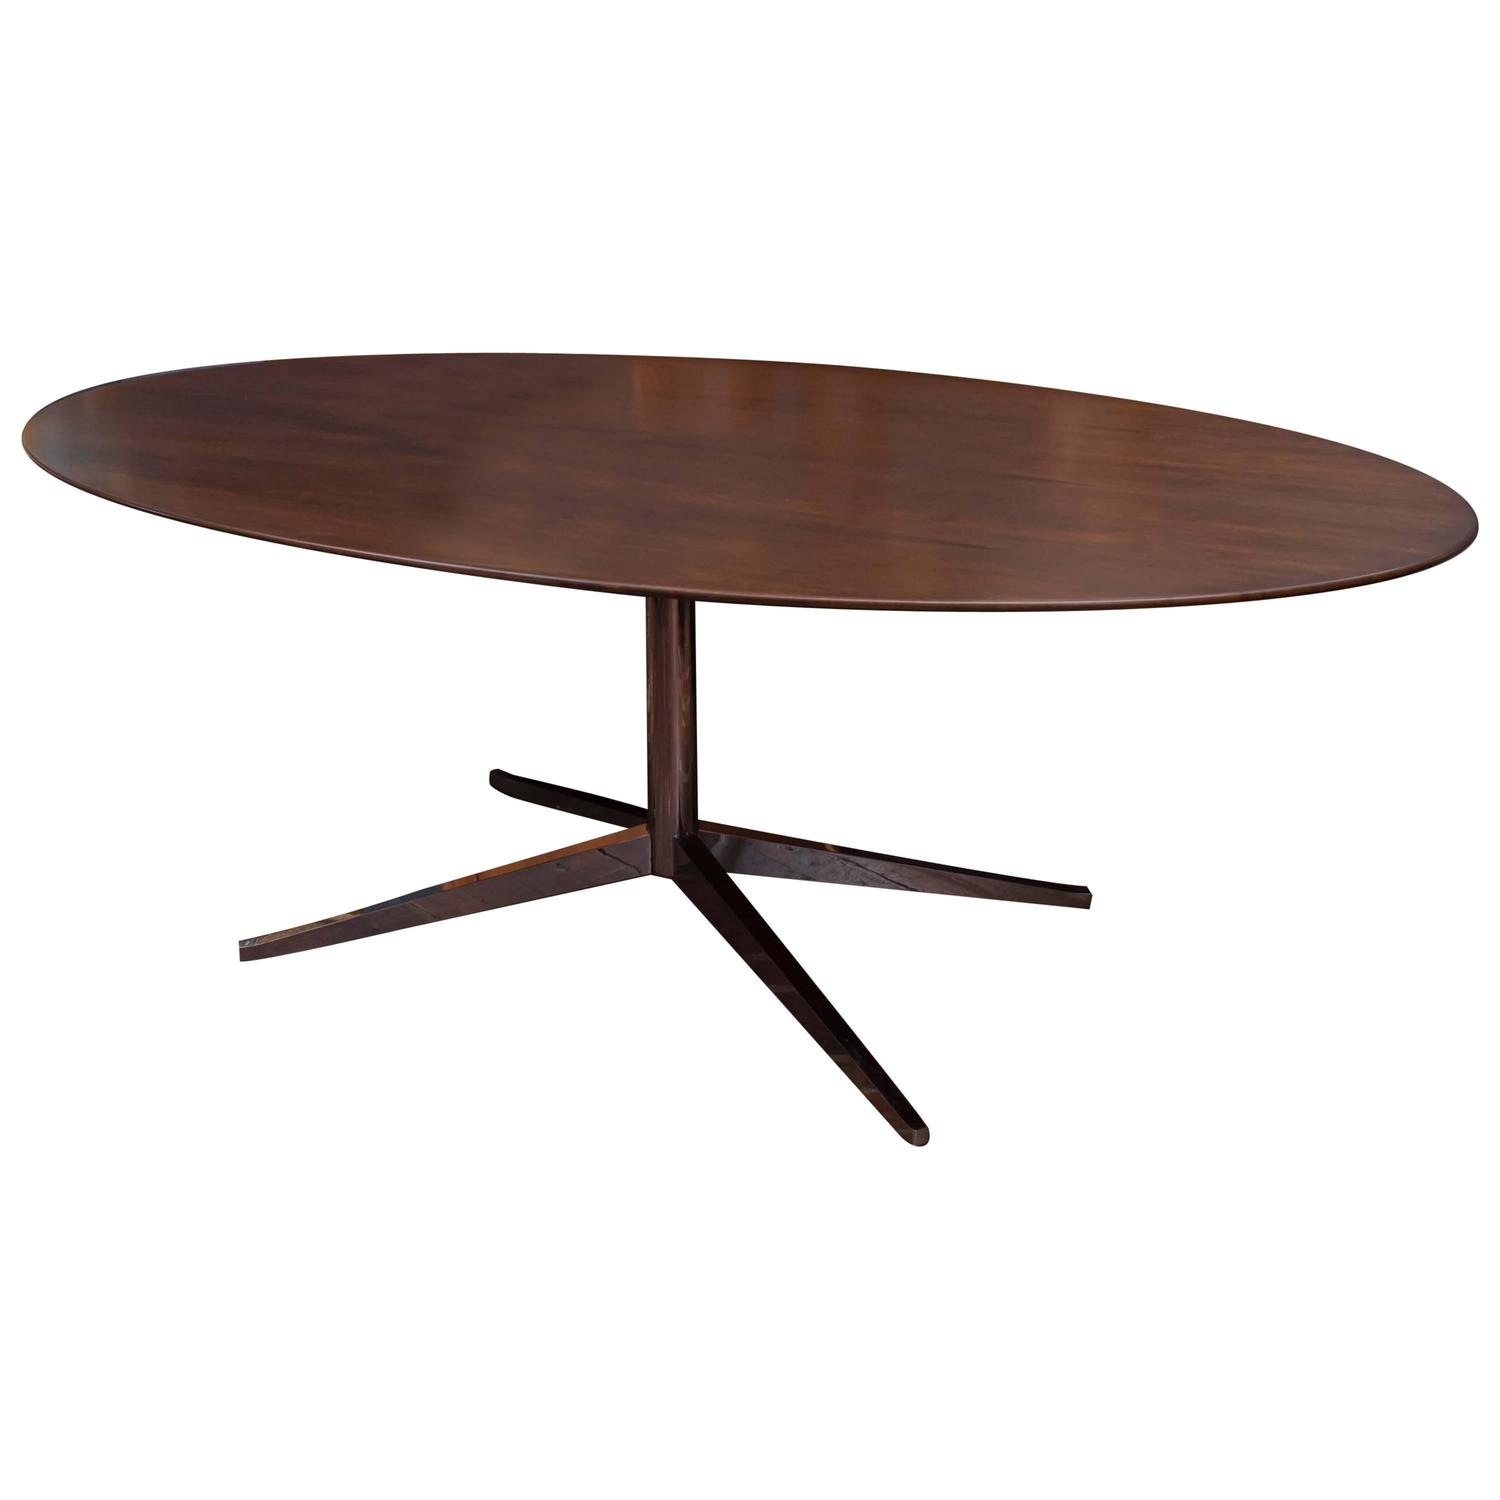 Florence Knoll Dining Table at 1stdibs